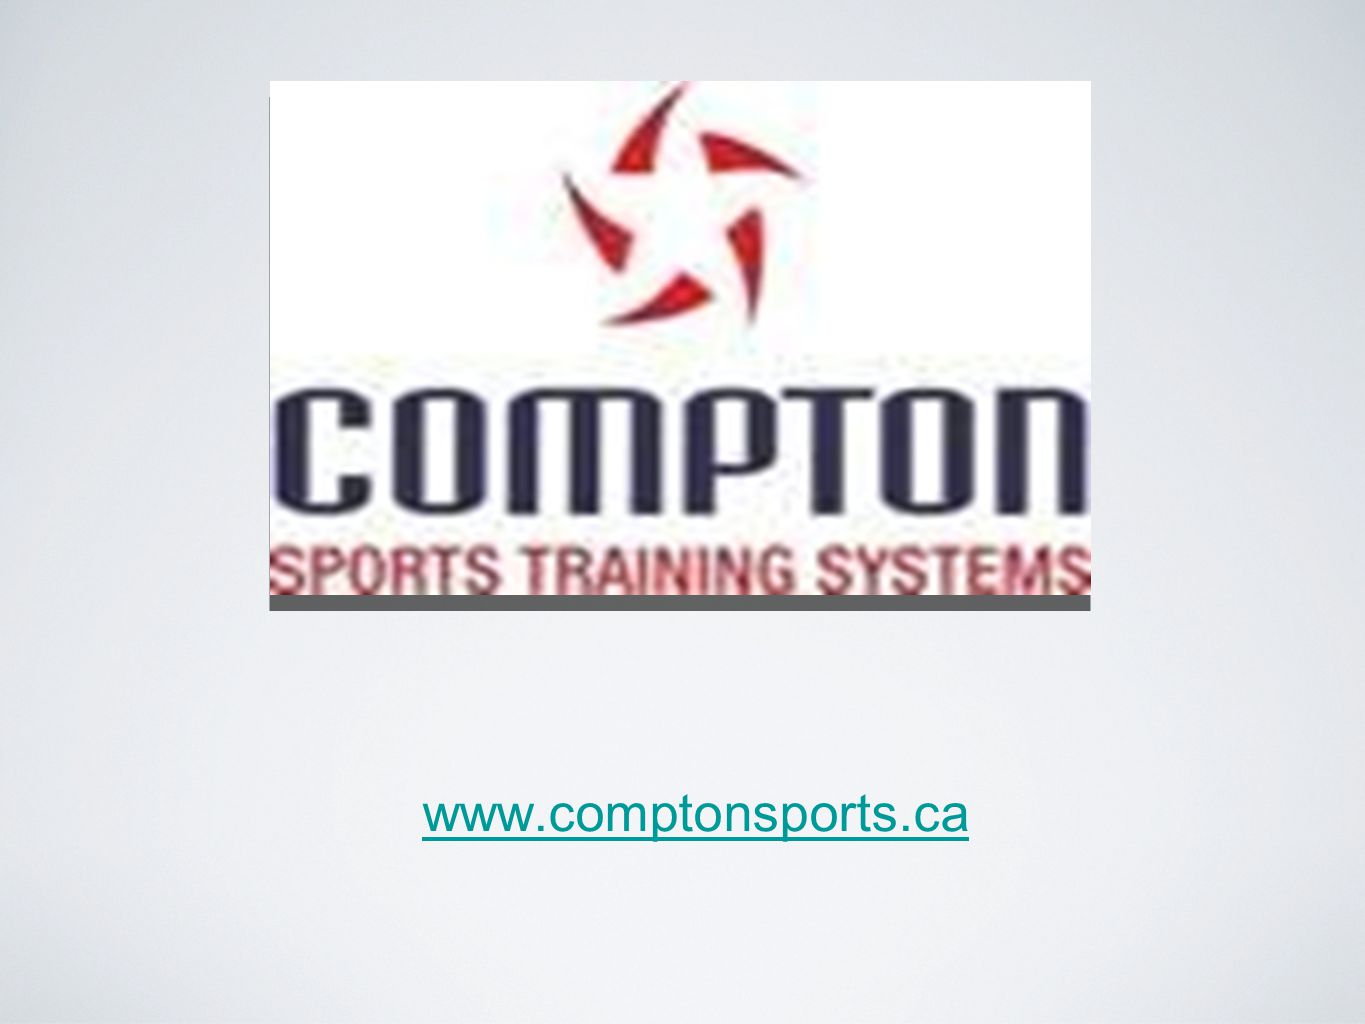 www.comptonsports.ca